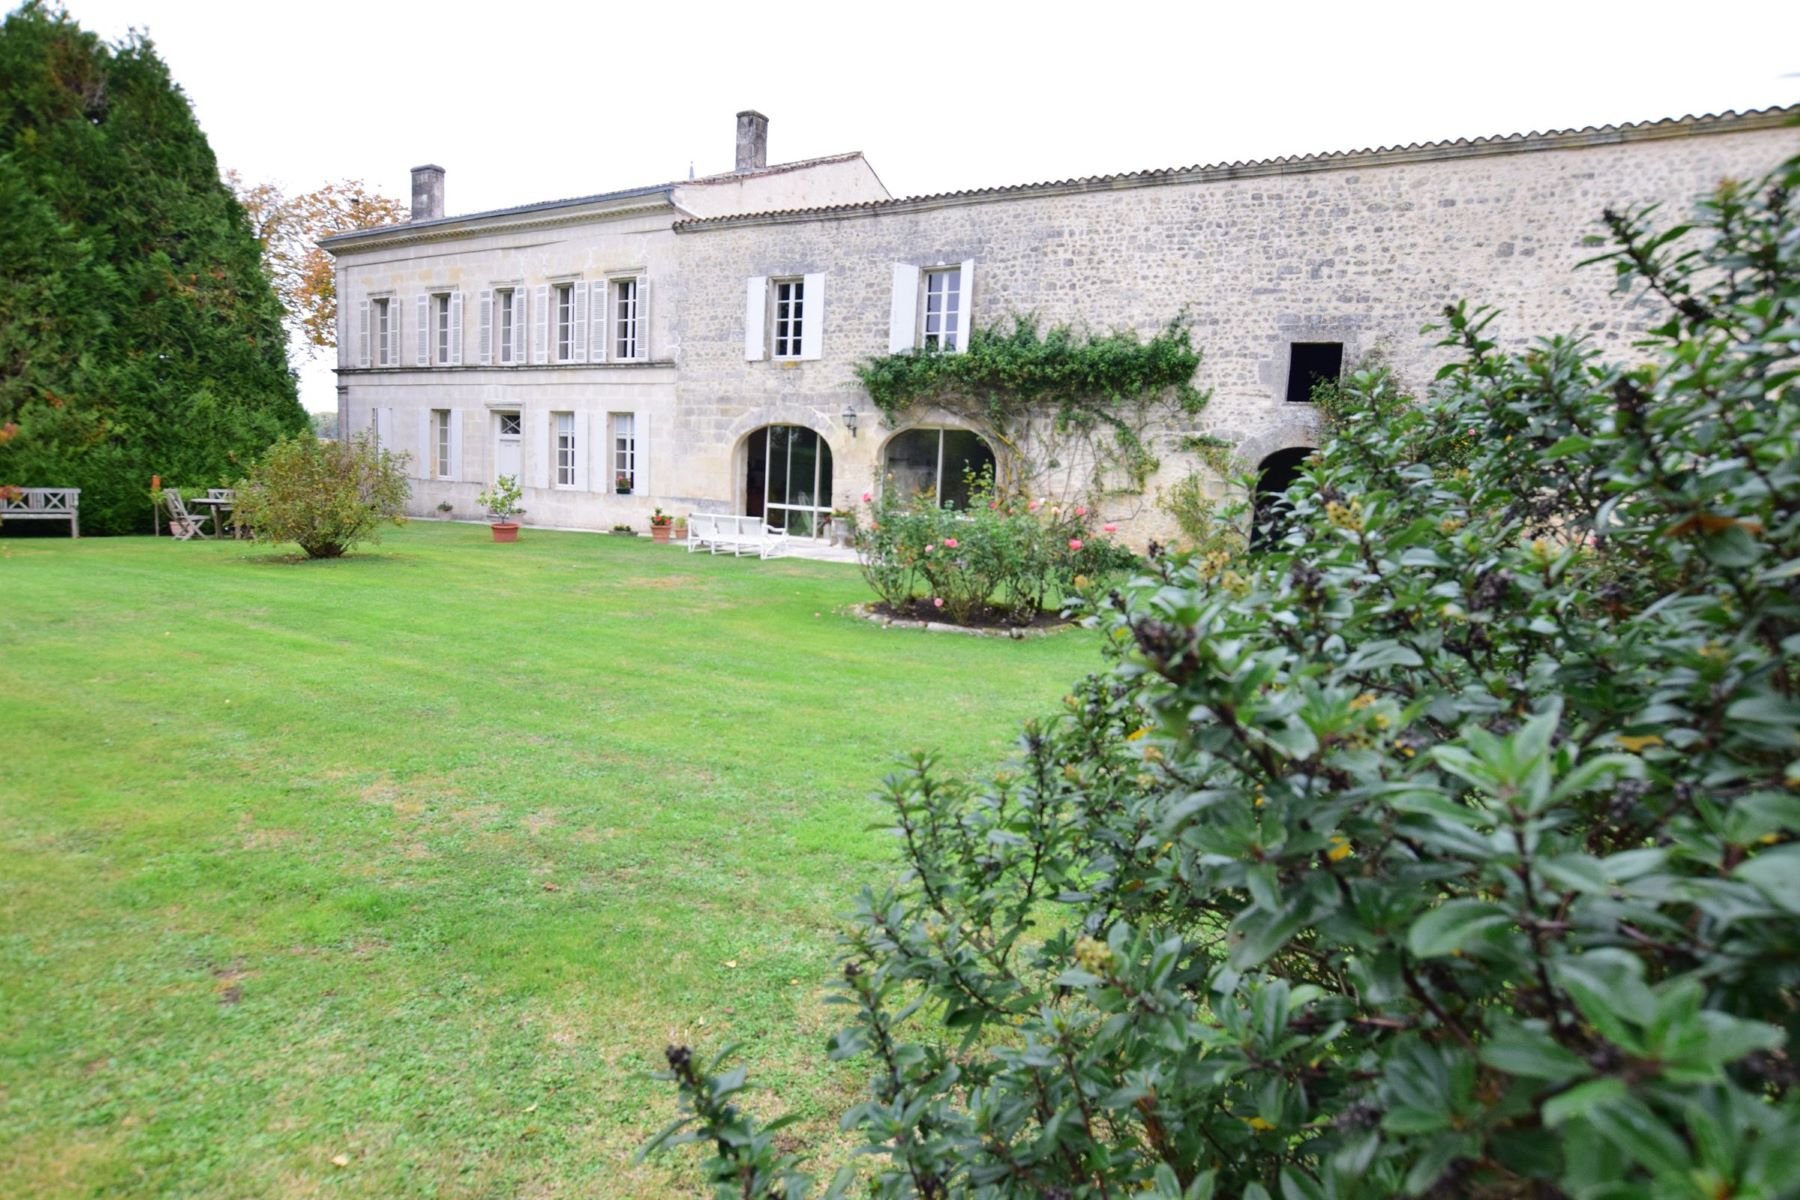 Maison unifamiliale pour l à vendre à Property with guest house and pool - Charente Maritime Jonzac, Poitou-Charentes, 17500 France